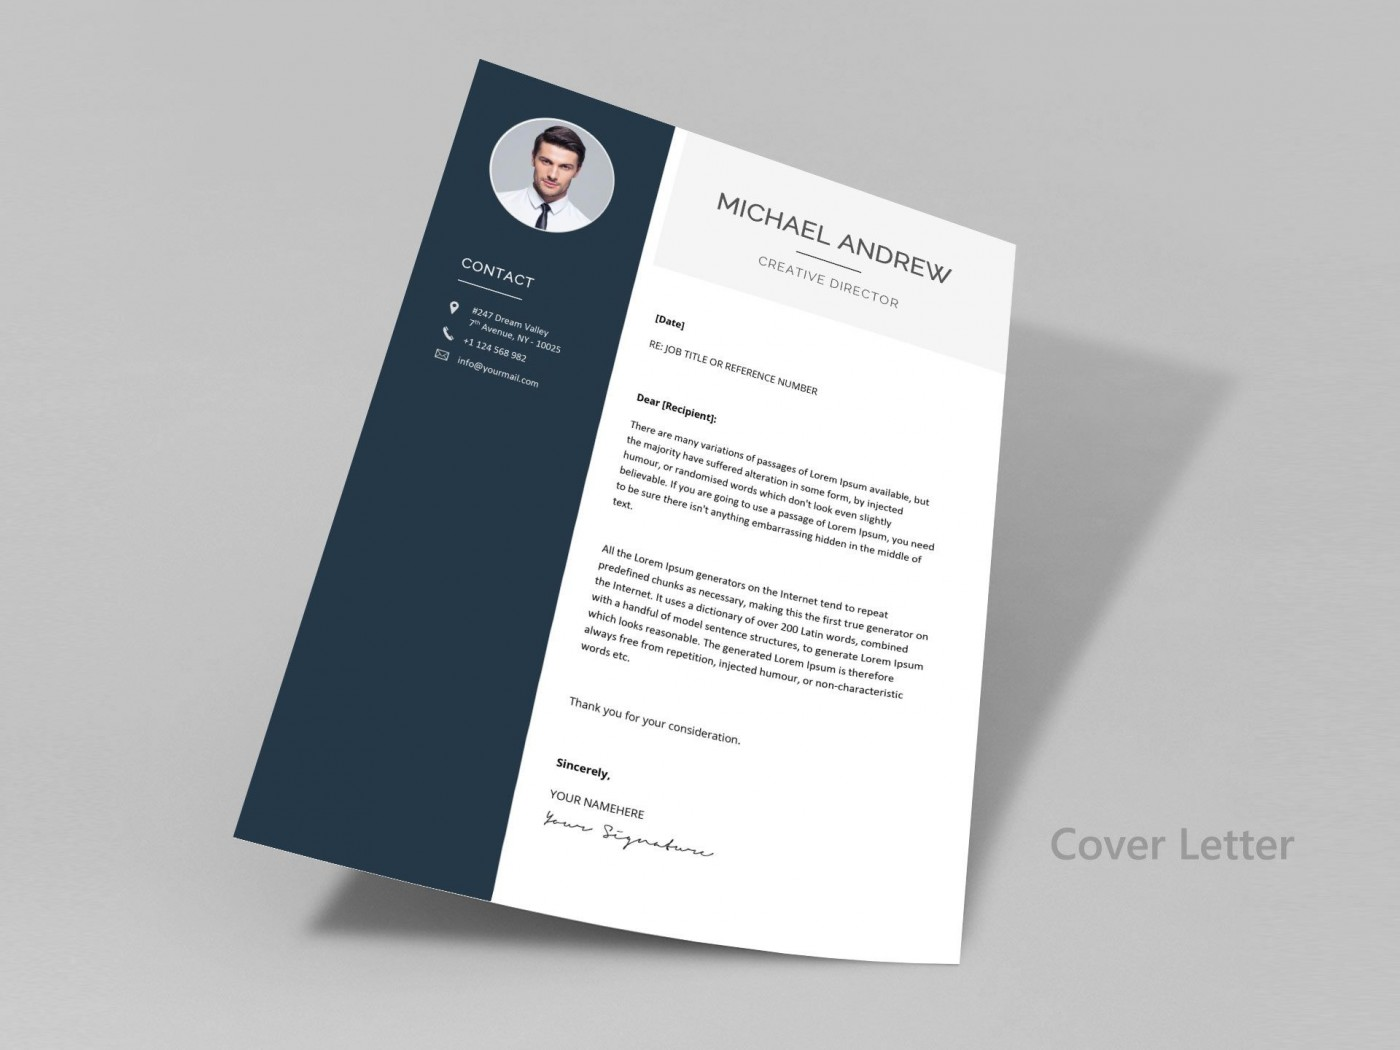 007 Awful Modern Cv Template Word Free Download 2019 High Definition 1400